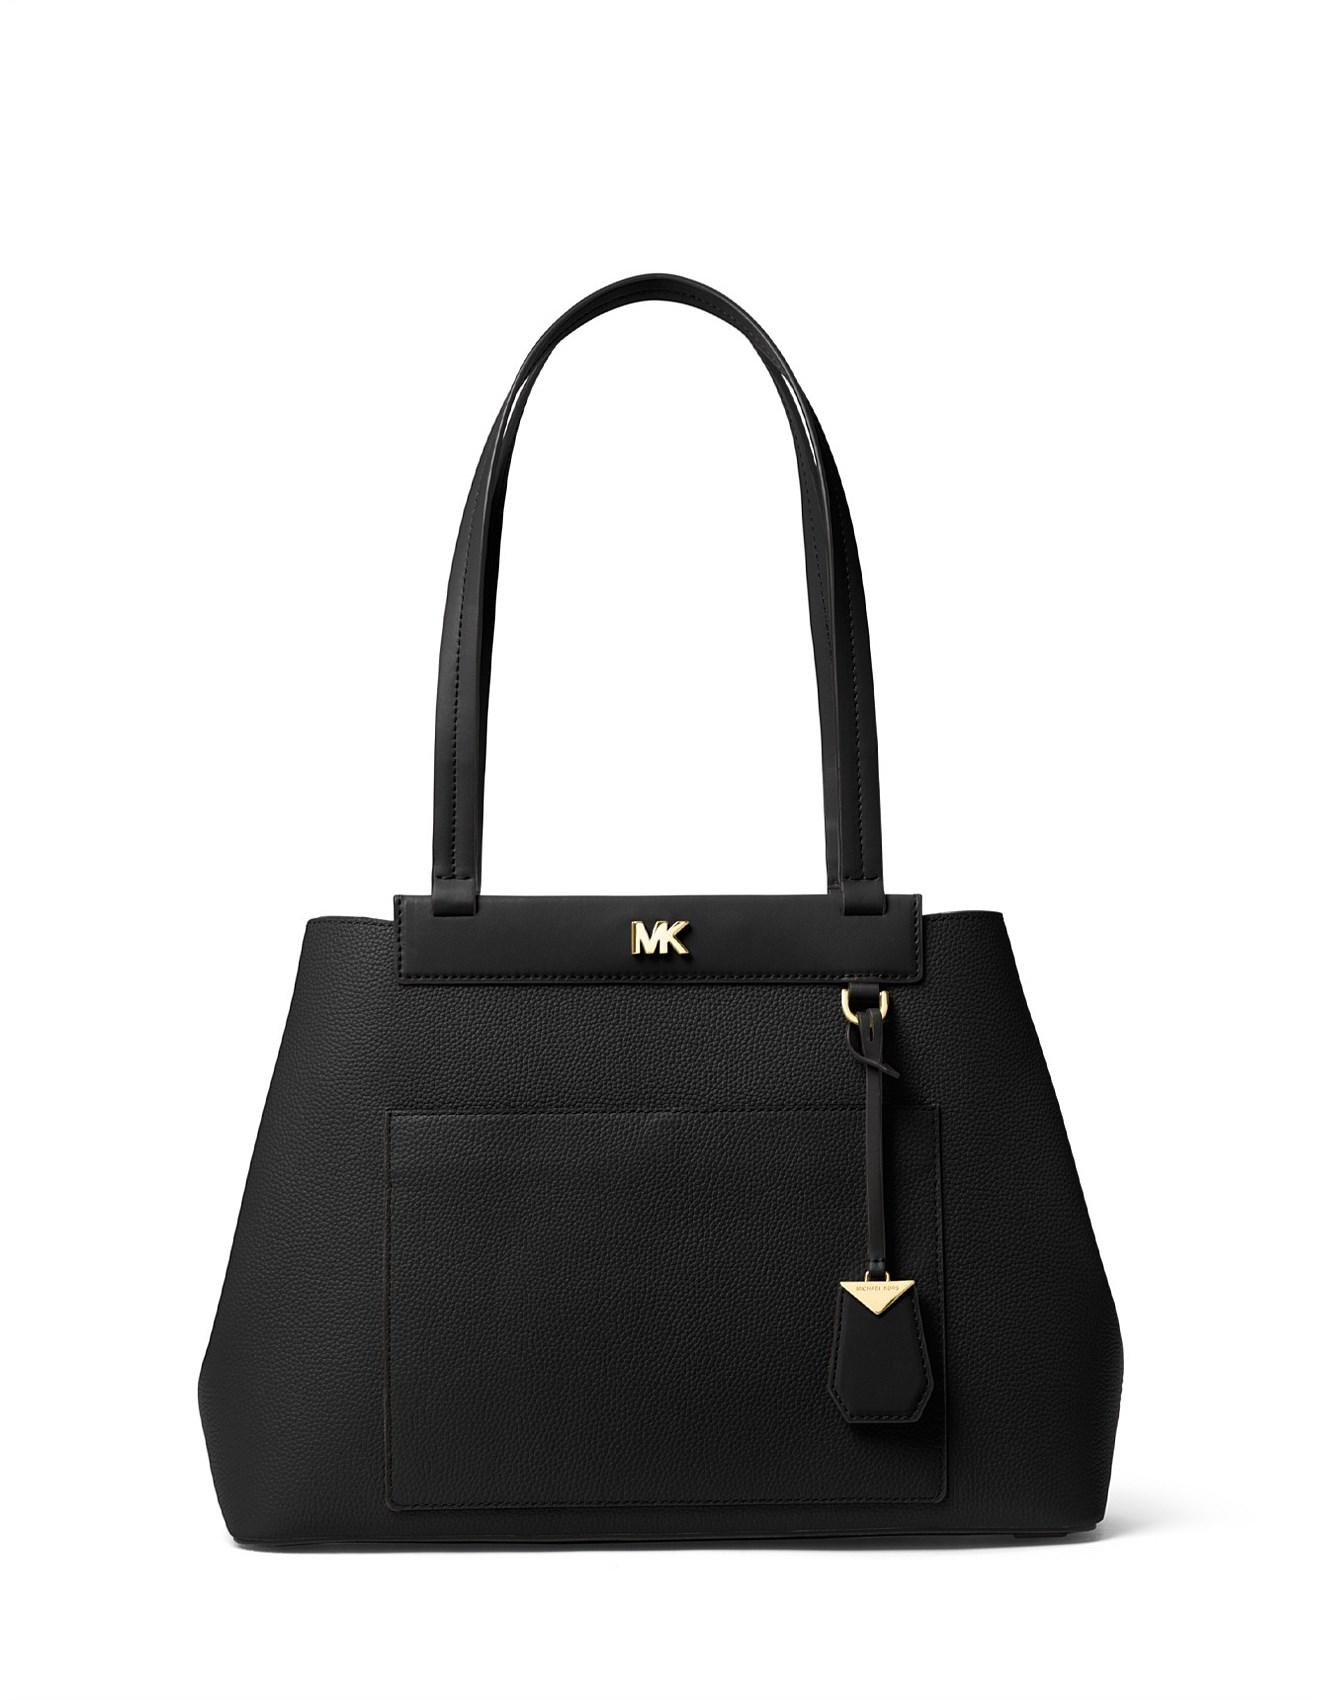 0ec90080df5a1f Michael Kors Meredith Medium Pebbled Leather Tote in Black - Lyst